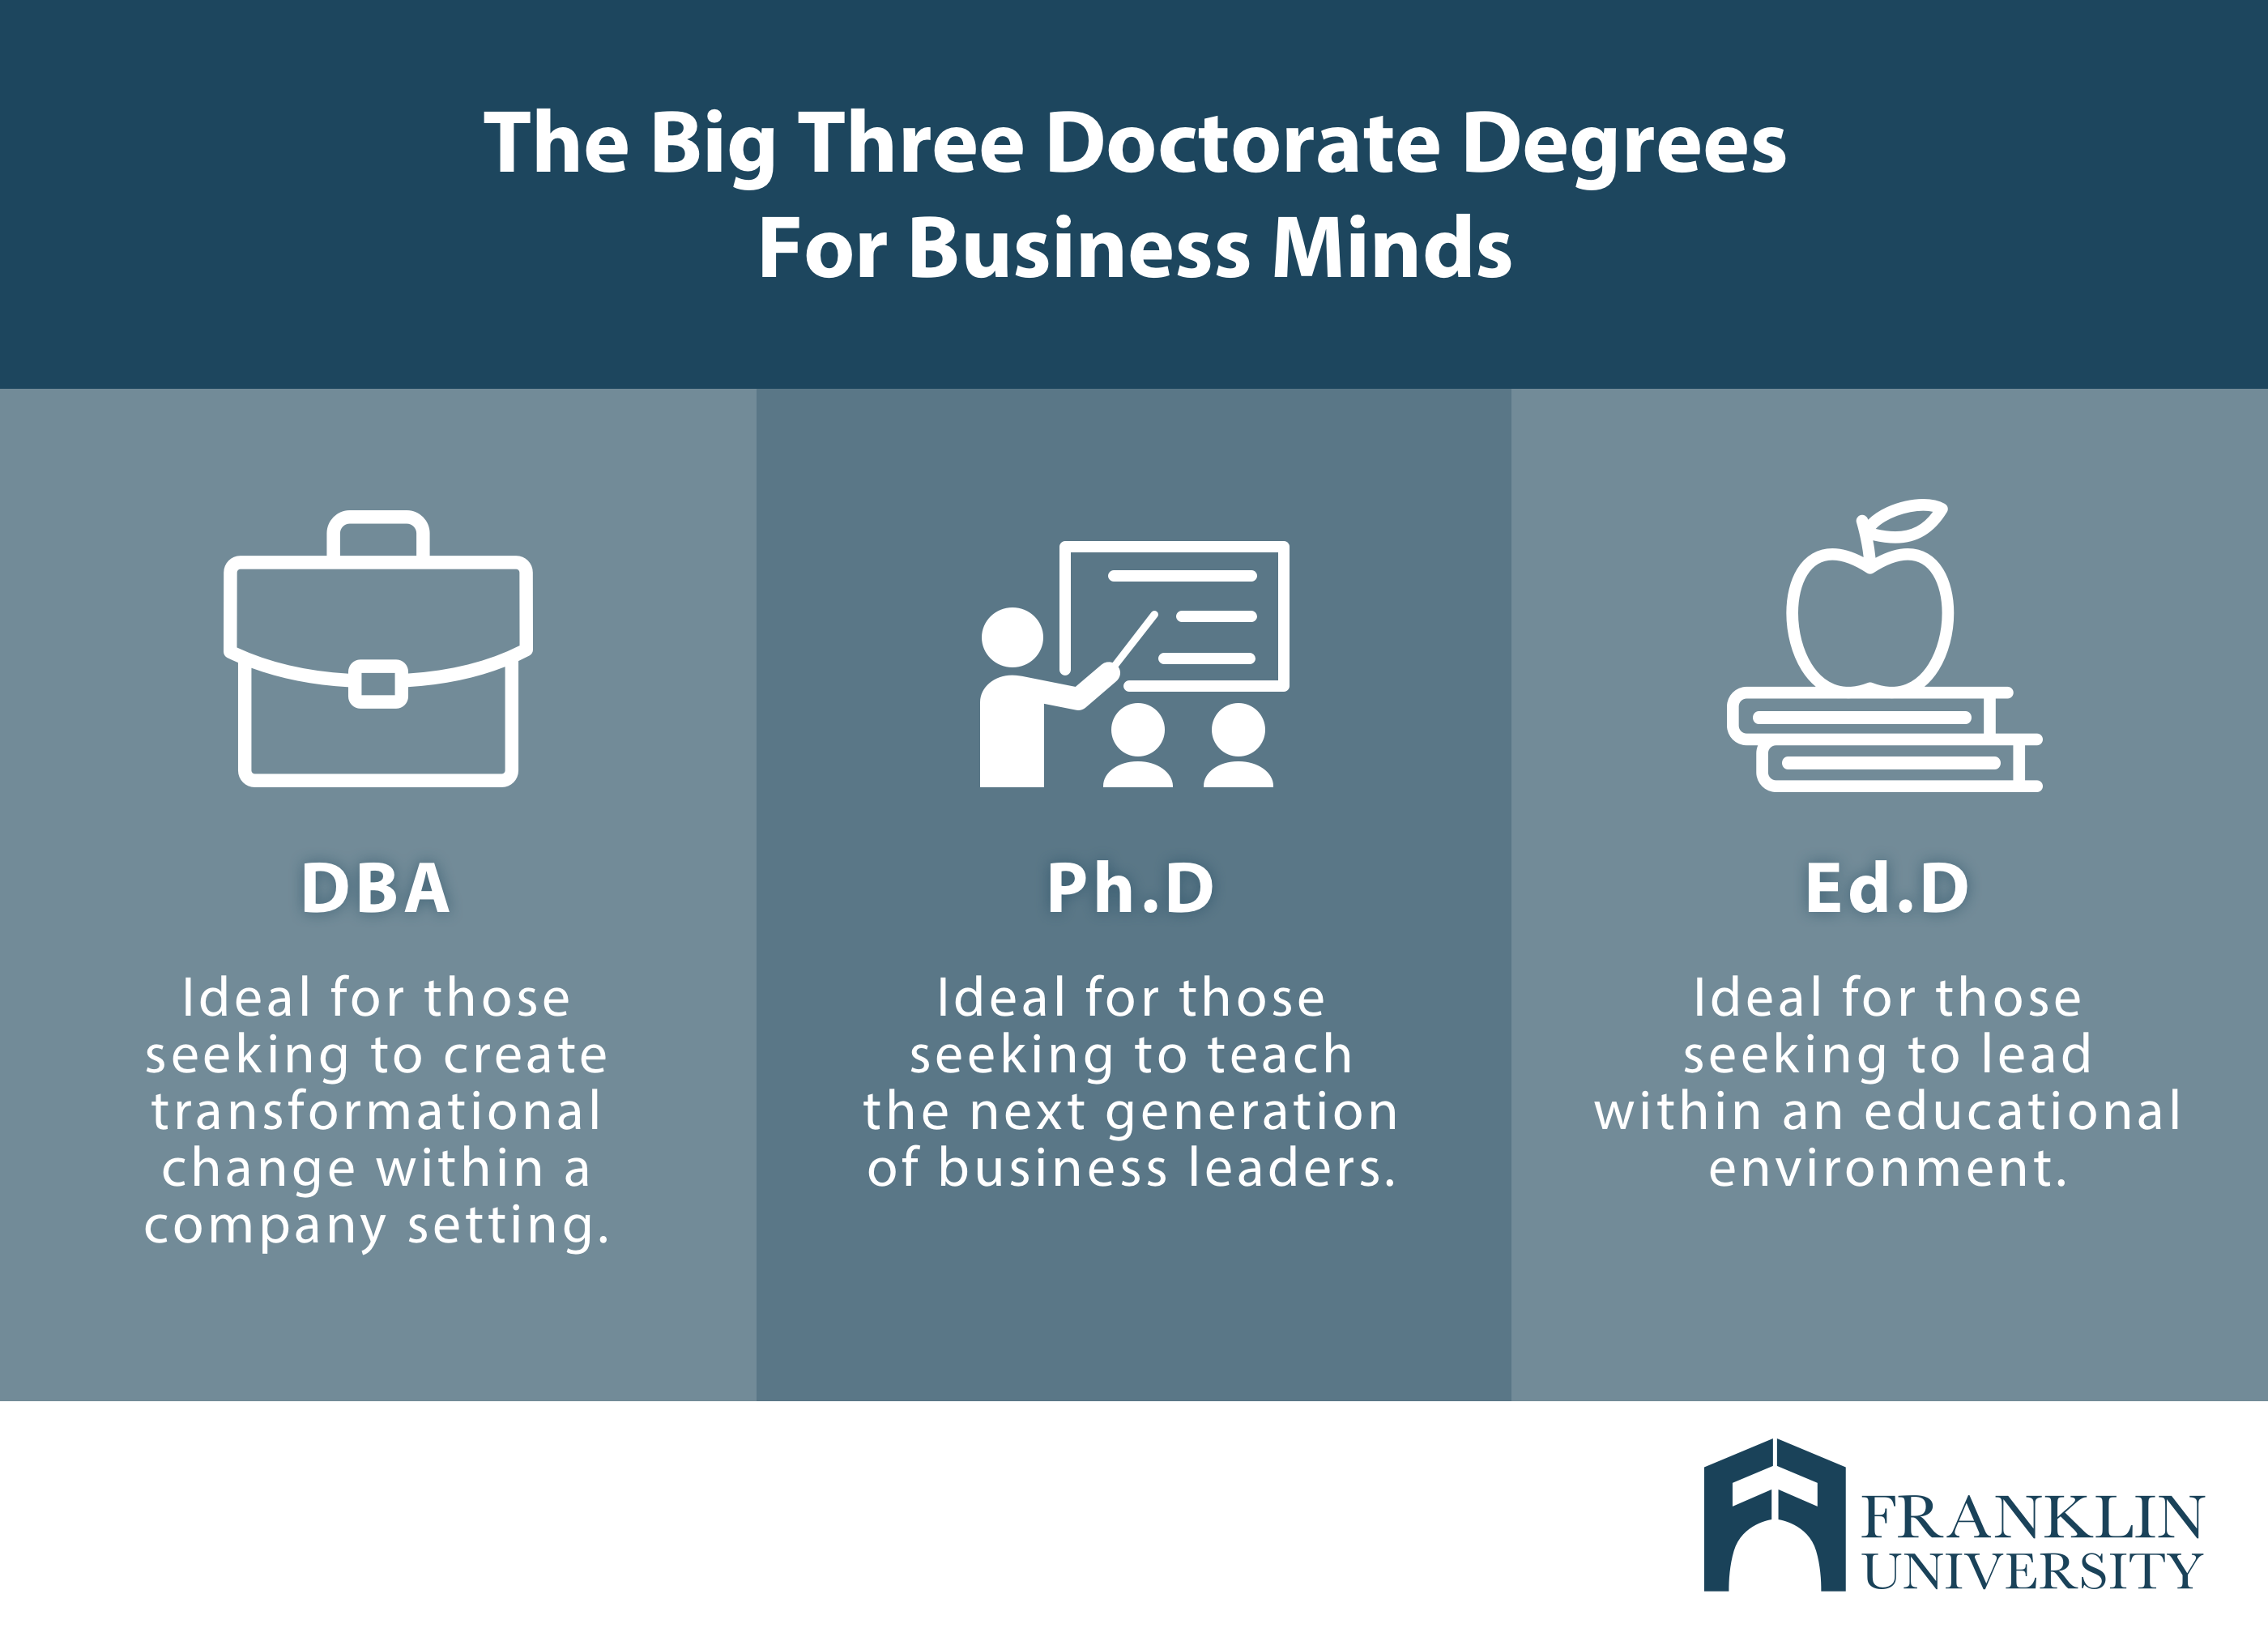 Best Doctorate Degree To Get